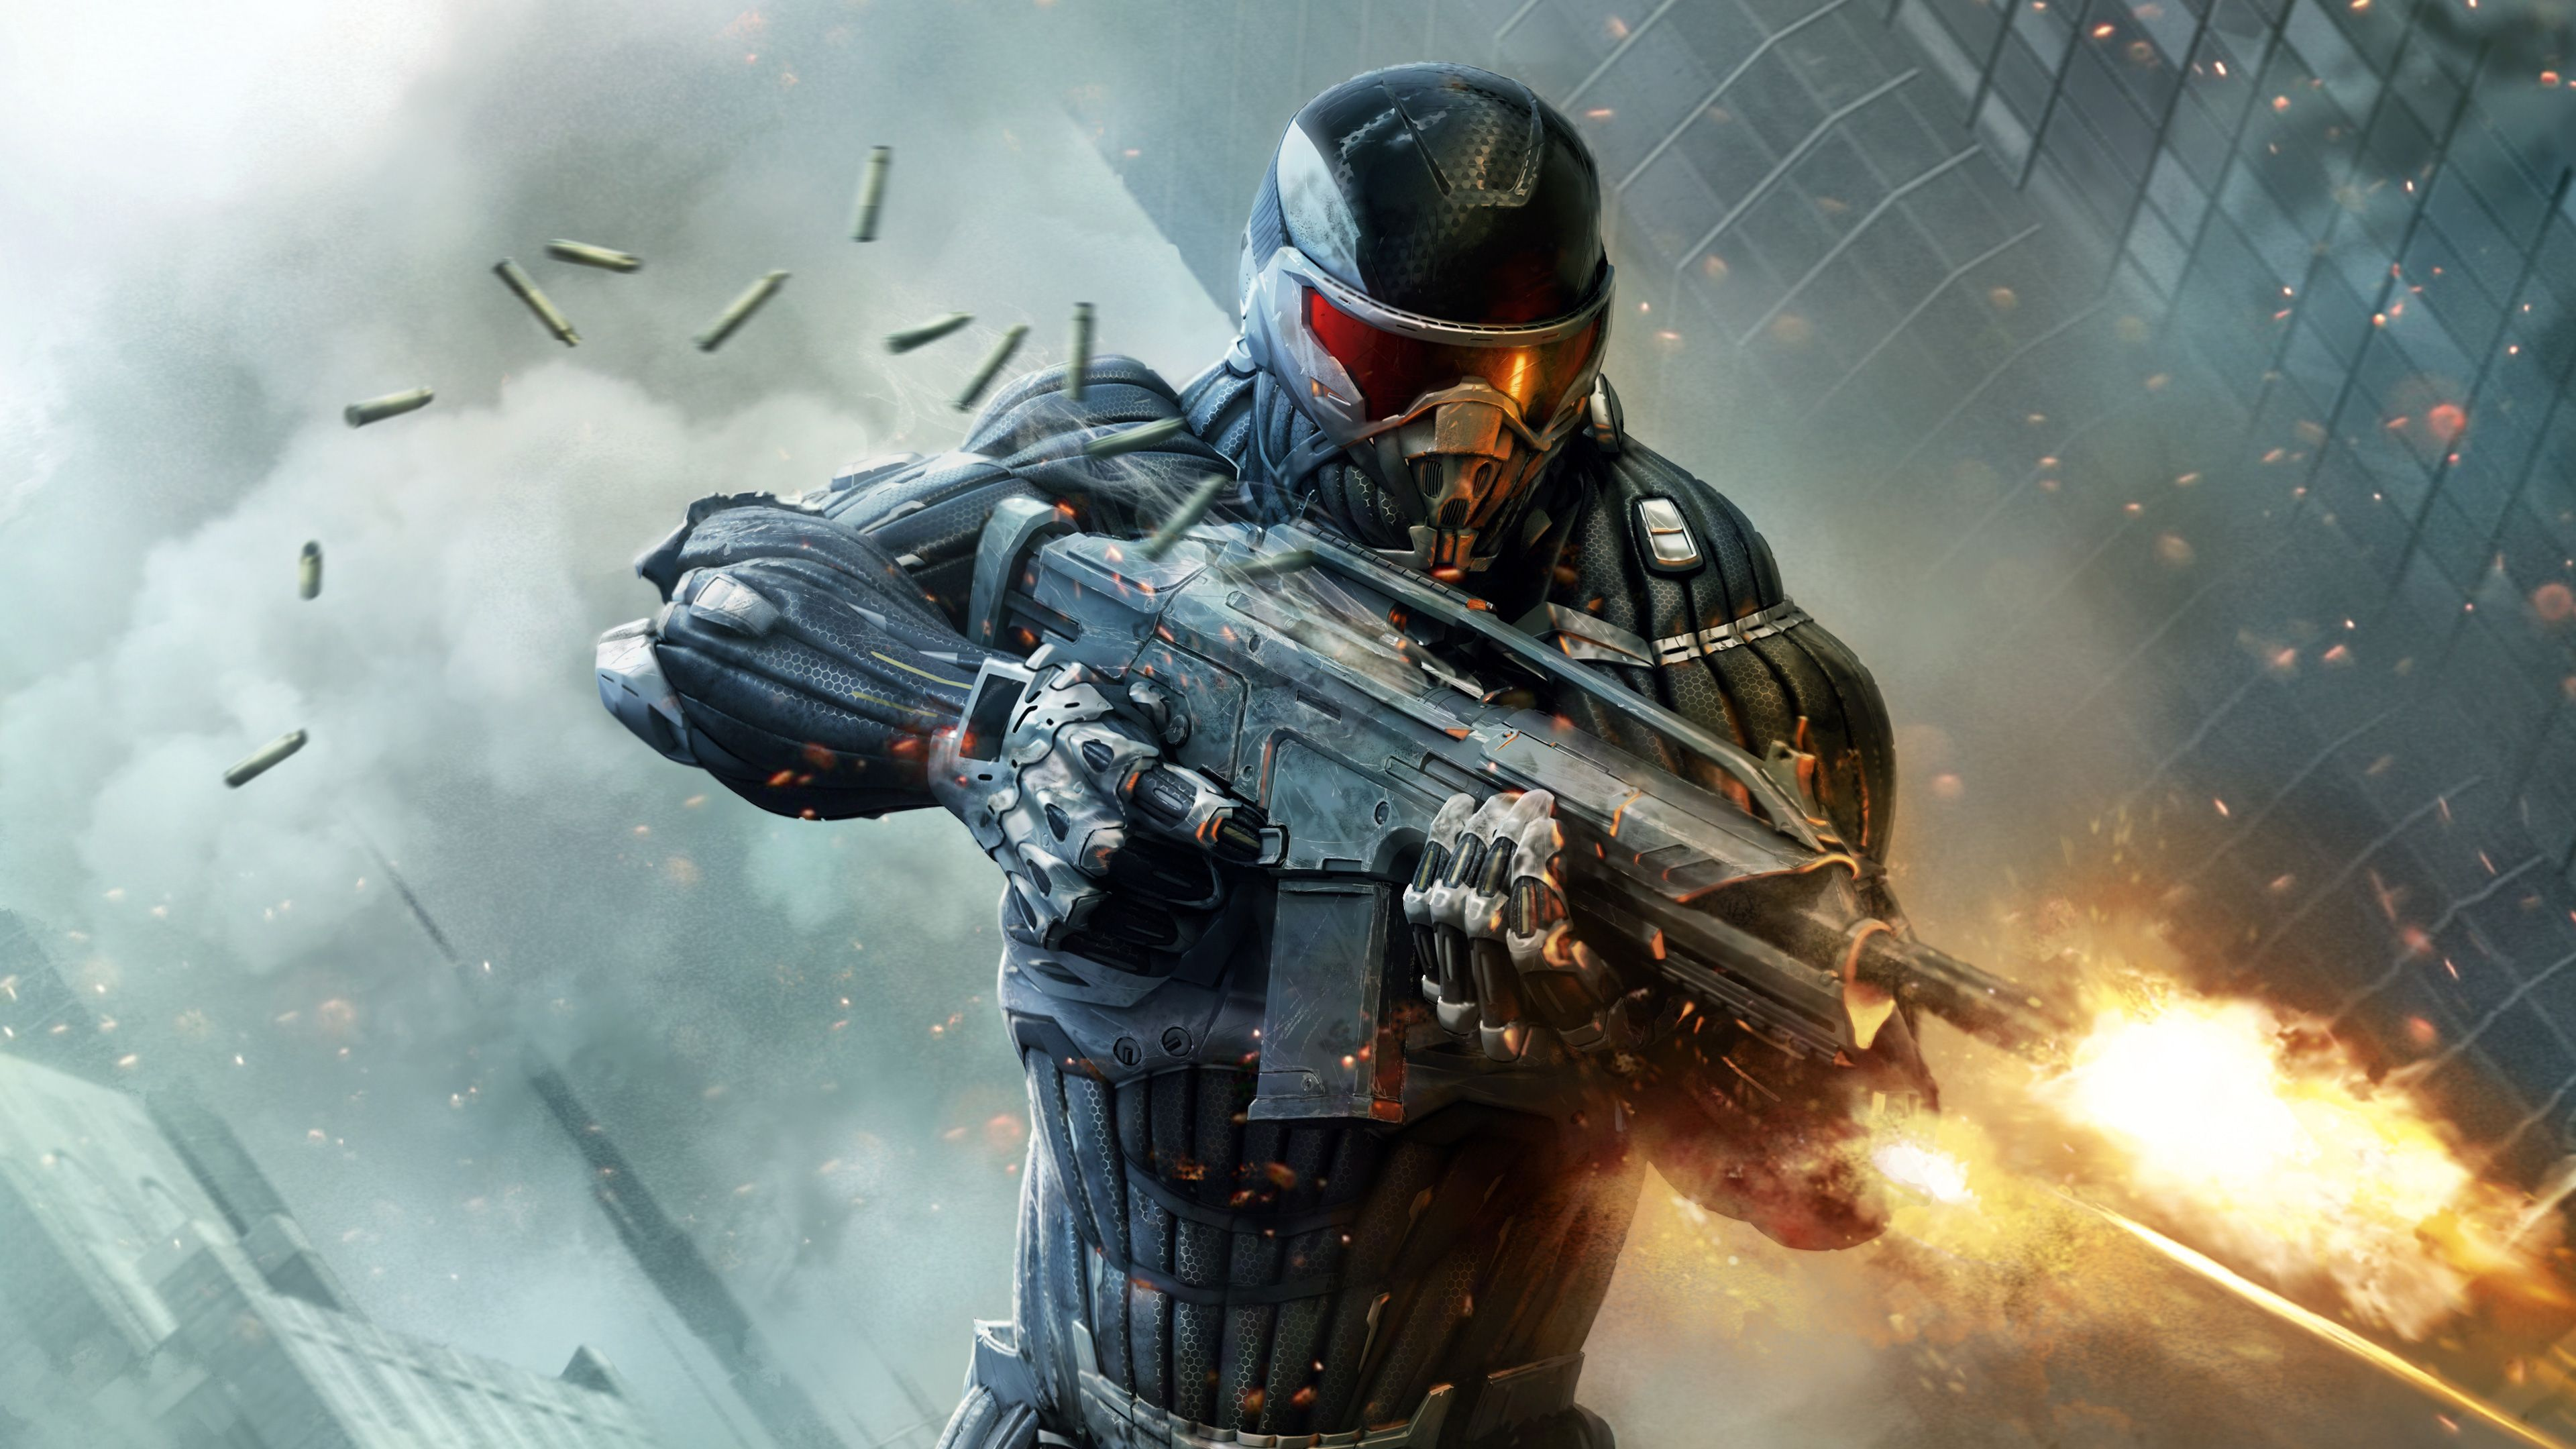 Crysis 2 1 3840x2160 Gaming Wallpapers Pc Games Wallpapers Full Hd Pictures